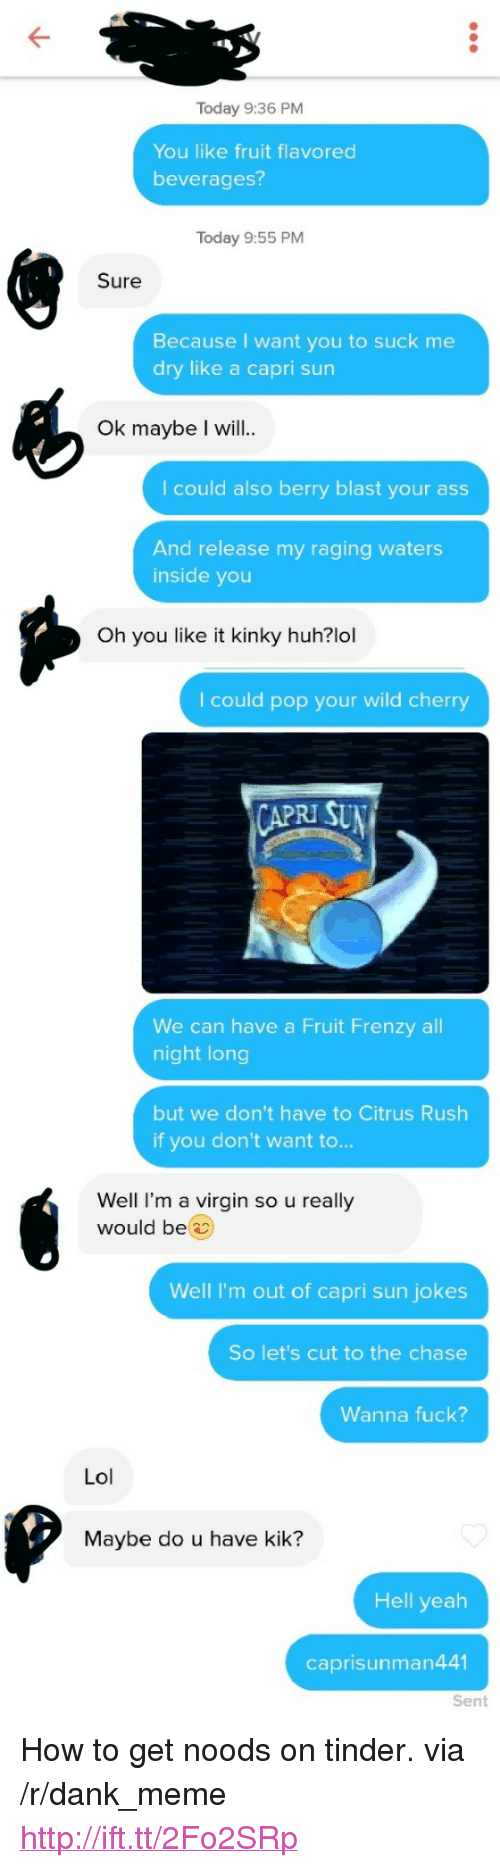 """kik: Today 9:36 PM  You like fruit flavored  beverages?  Today 9:55 PM  Sure  Because I want you to suck me  dry like a capri sun  Ok maybe I will..  I could also berry blast your ass  And release my raging waters  inside you  Oh you like it kinky huh?lol  I could pop your wild cherry  RI SU  We can have a Fruit Frenzy all  night long  but we don't have to Citrus Rush  if you don't want to...  Well I'm a virgin so u really  would be  Well I'm out of capri sun jokes  So let's cut to the chase  Wanna fuck?  Lol  Maybe do u have kik?  Hell yeah  caprisunman441  Sent <p>How to get noods on tinder. via /r/dank_meme <a href=""""http://ift.tt/2Fo2SRp"""">http://ift.tt/2Fo2SRp</a></p>"""